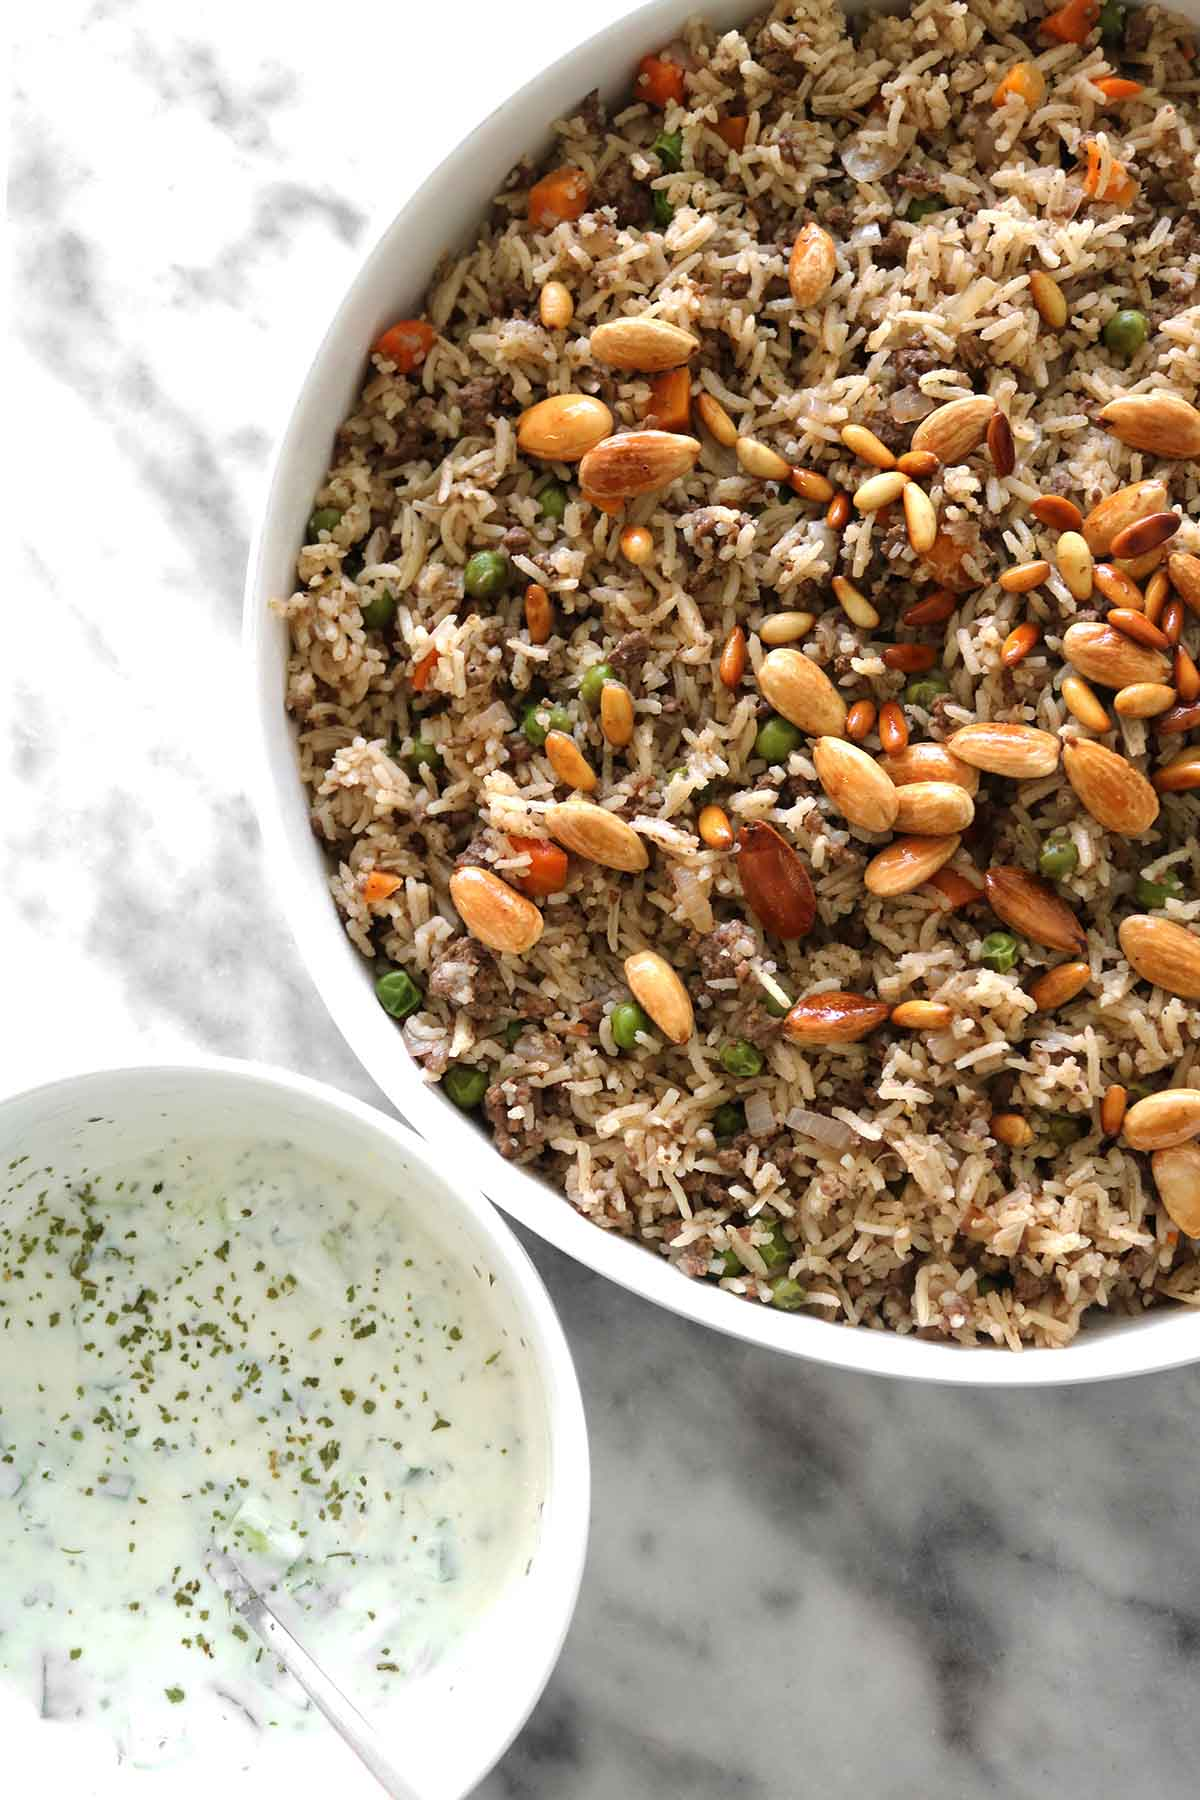 ouzi spiced rice with lamb in a bowl next to yogurt